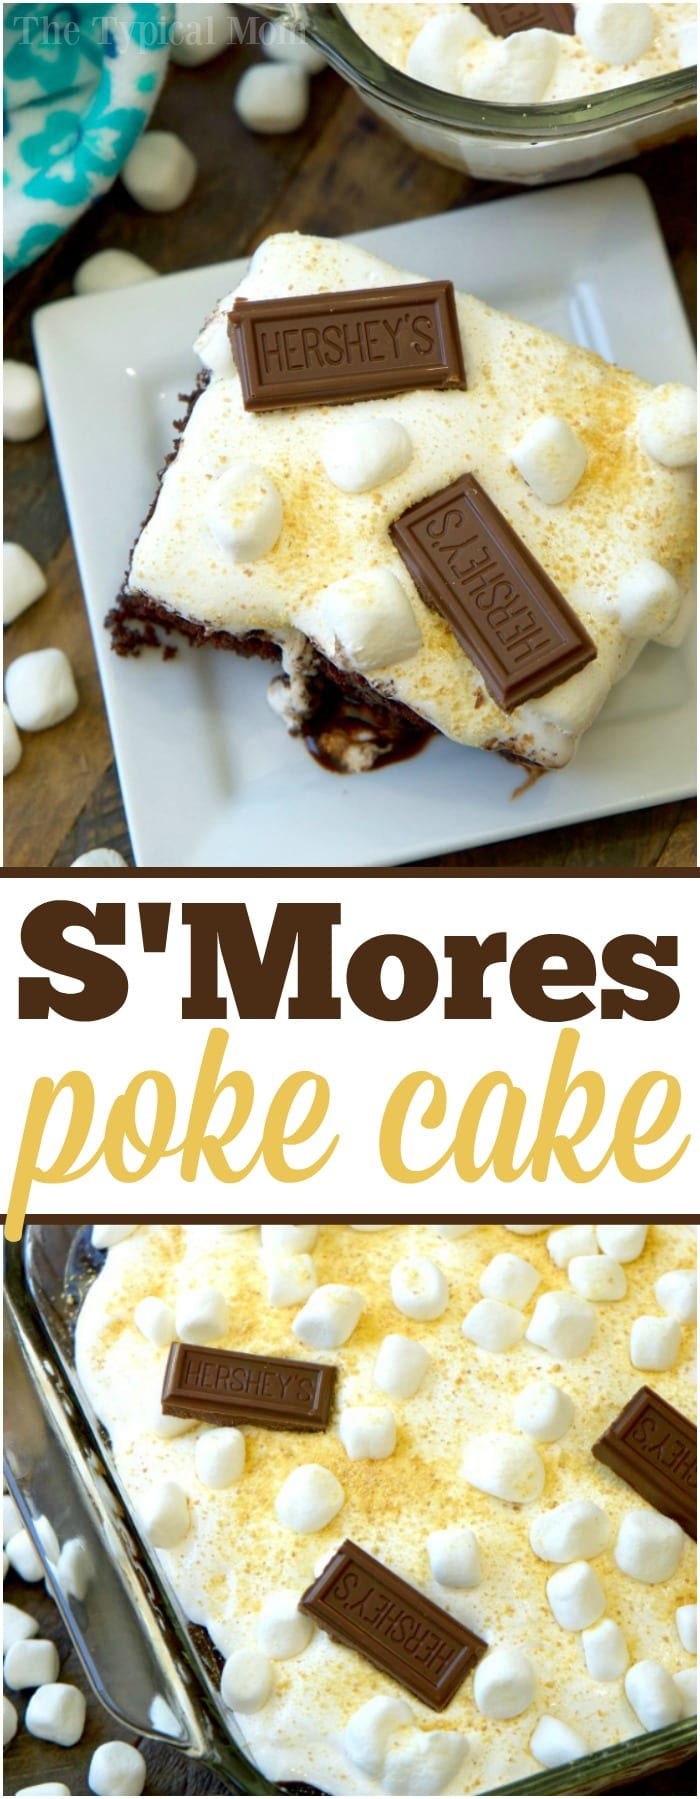 This is the most amazing smores poke cake ever! If you love chocolate with marshmallows and graham crackers over the campfire but want that same flavor at home this is the perfect dessert! With rich cake dripping with chocolate inside and on top it is decadent but easy to make with just a few ingredients. #poke #cake #smores #hersheys #easy #chocolate #marshmallow #dessert